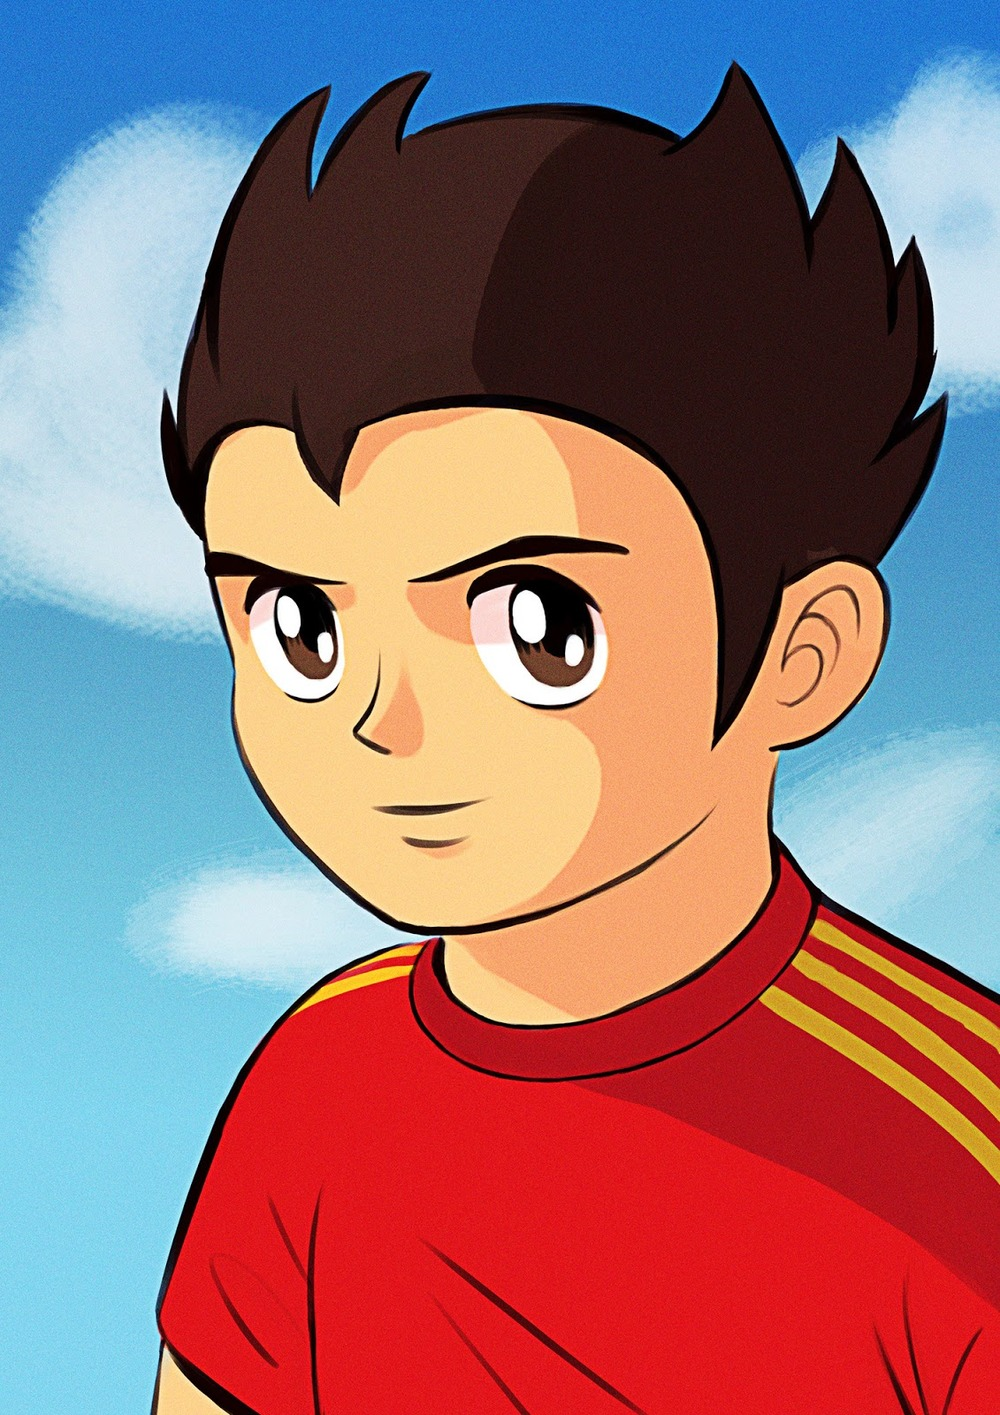 fifa_2014_kids_2characters_closeup_spain_small.jpg